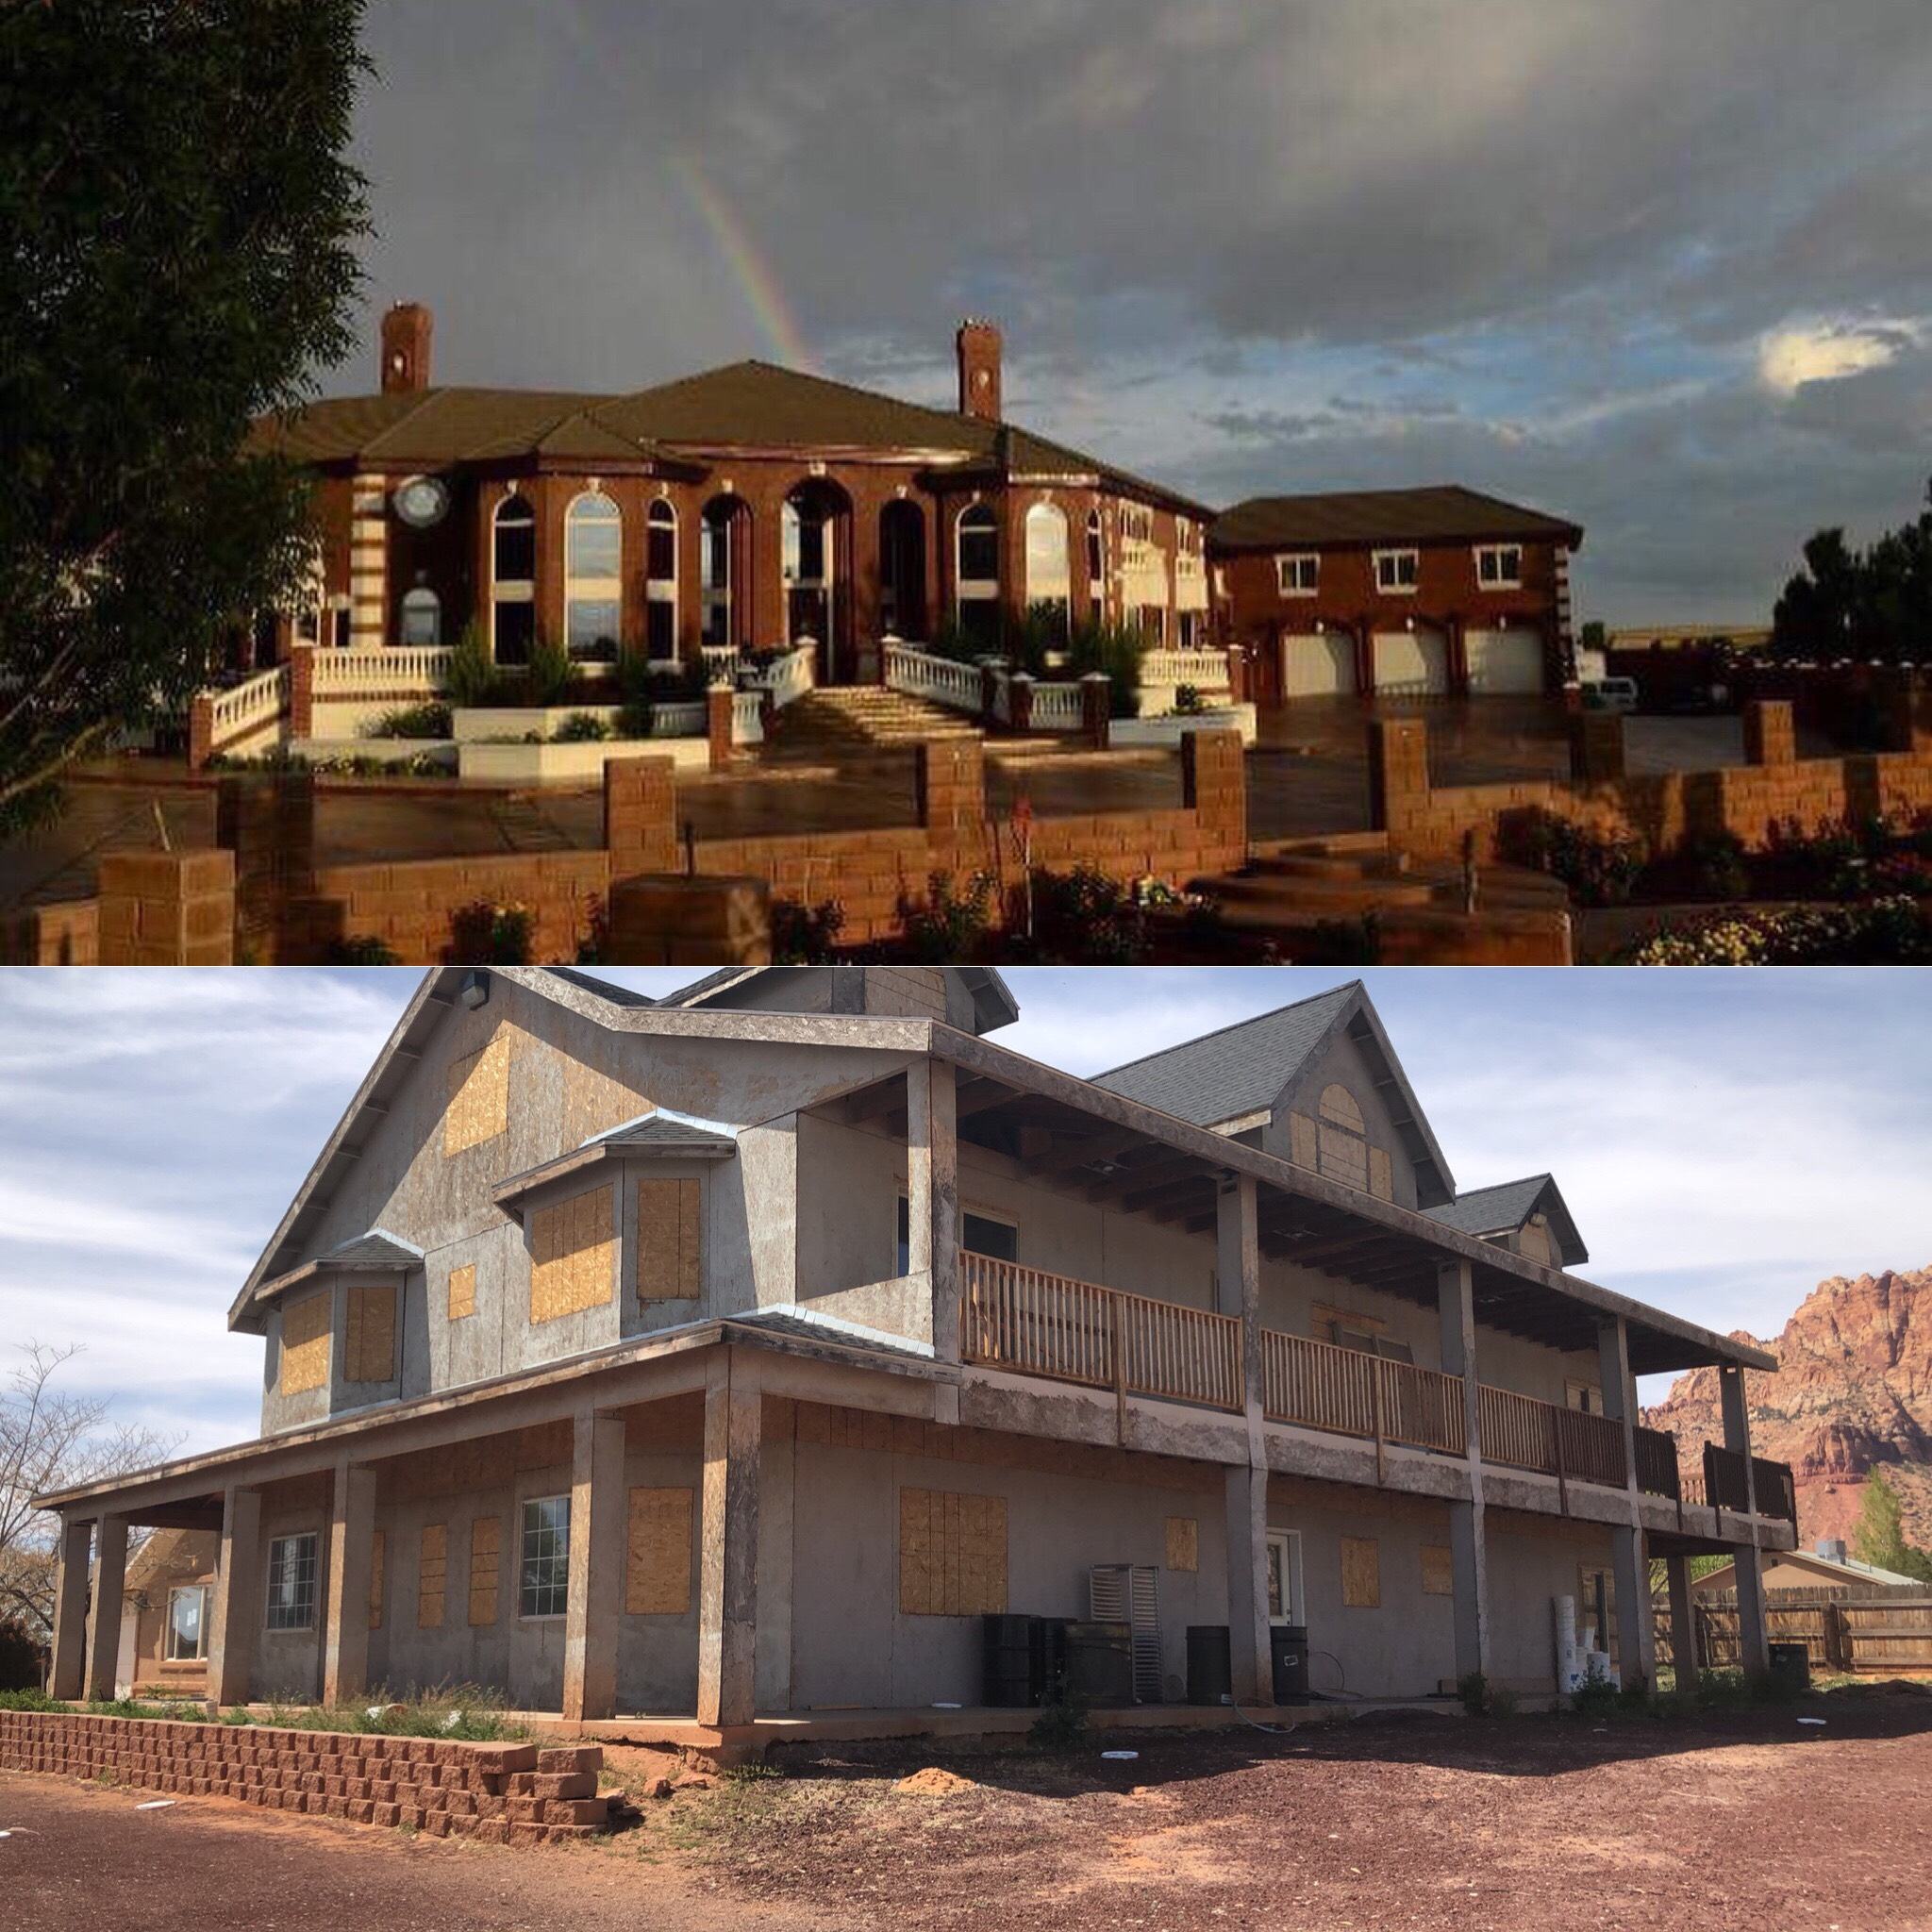 The top picture is one of the mansions in Centennial Park and the bottom picture is one of the many abandoned/half finished houses in the FLDS community. Just miles apart.